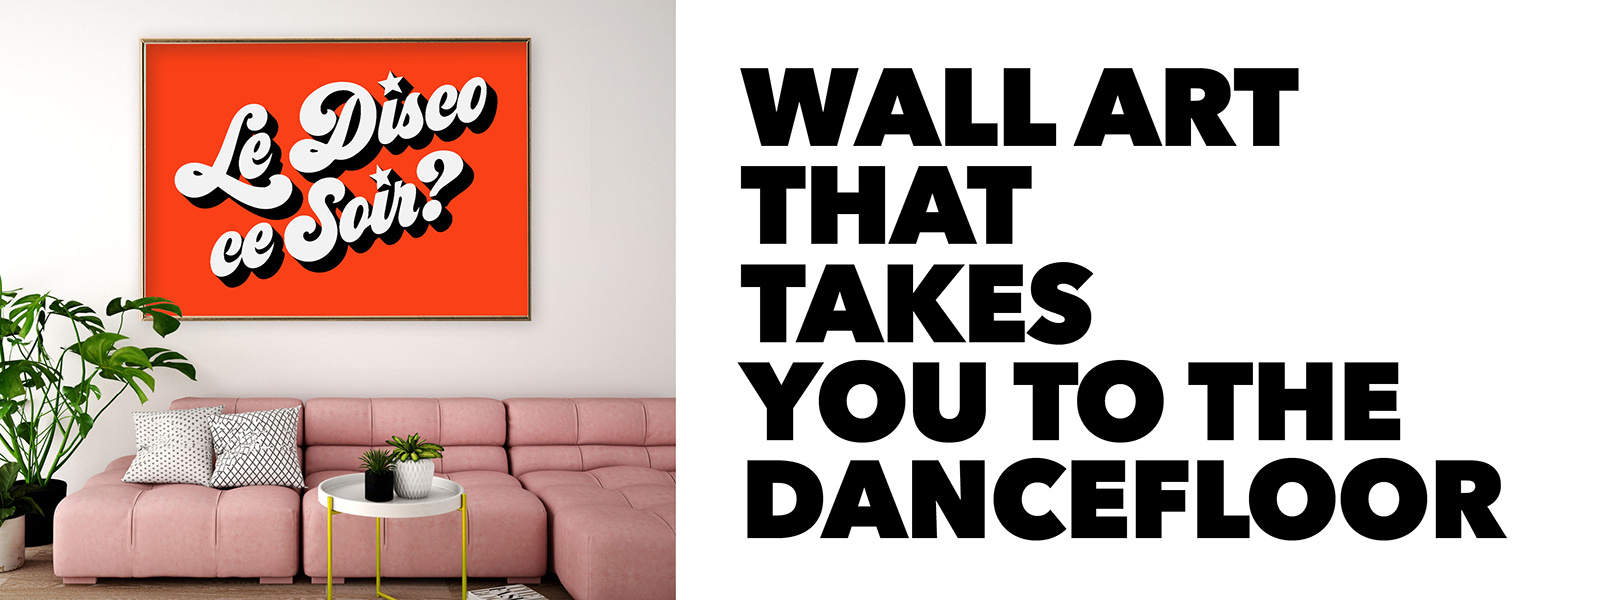 Statement wall art that takes you to the dancefloor.